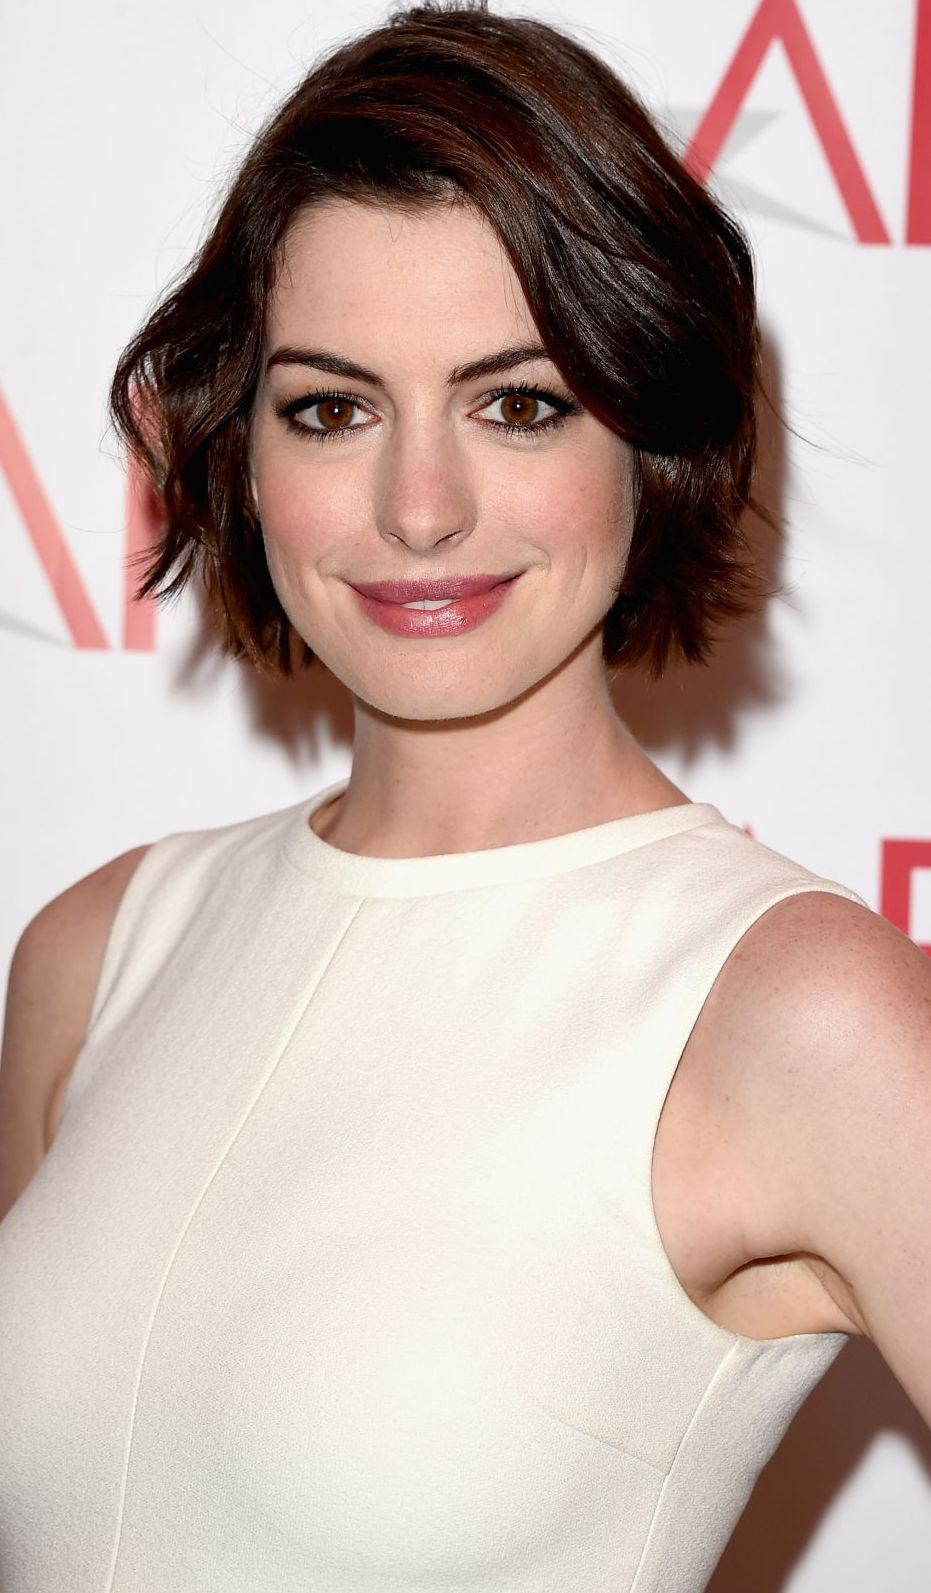 Forum on this topic: Lisa Varga, anne-hathaway-born-november-12-1982-age/